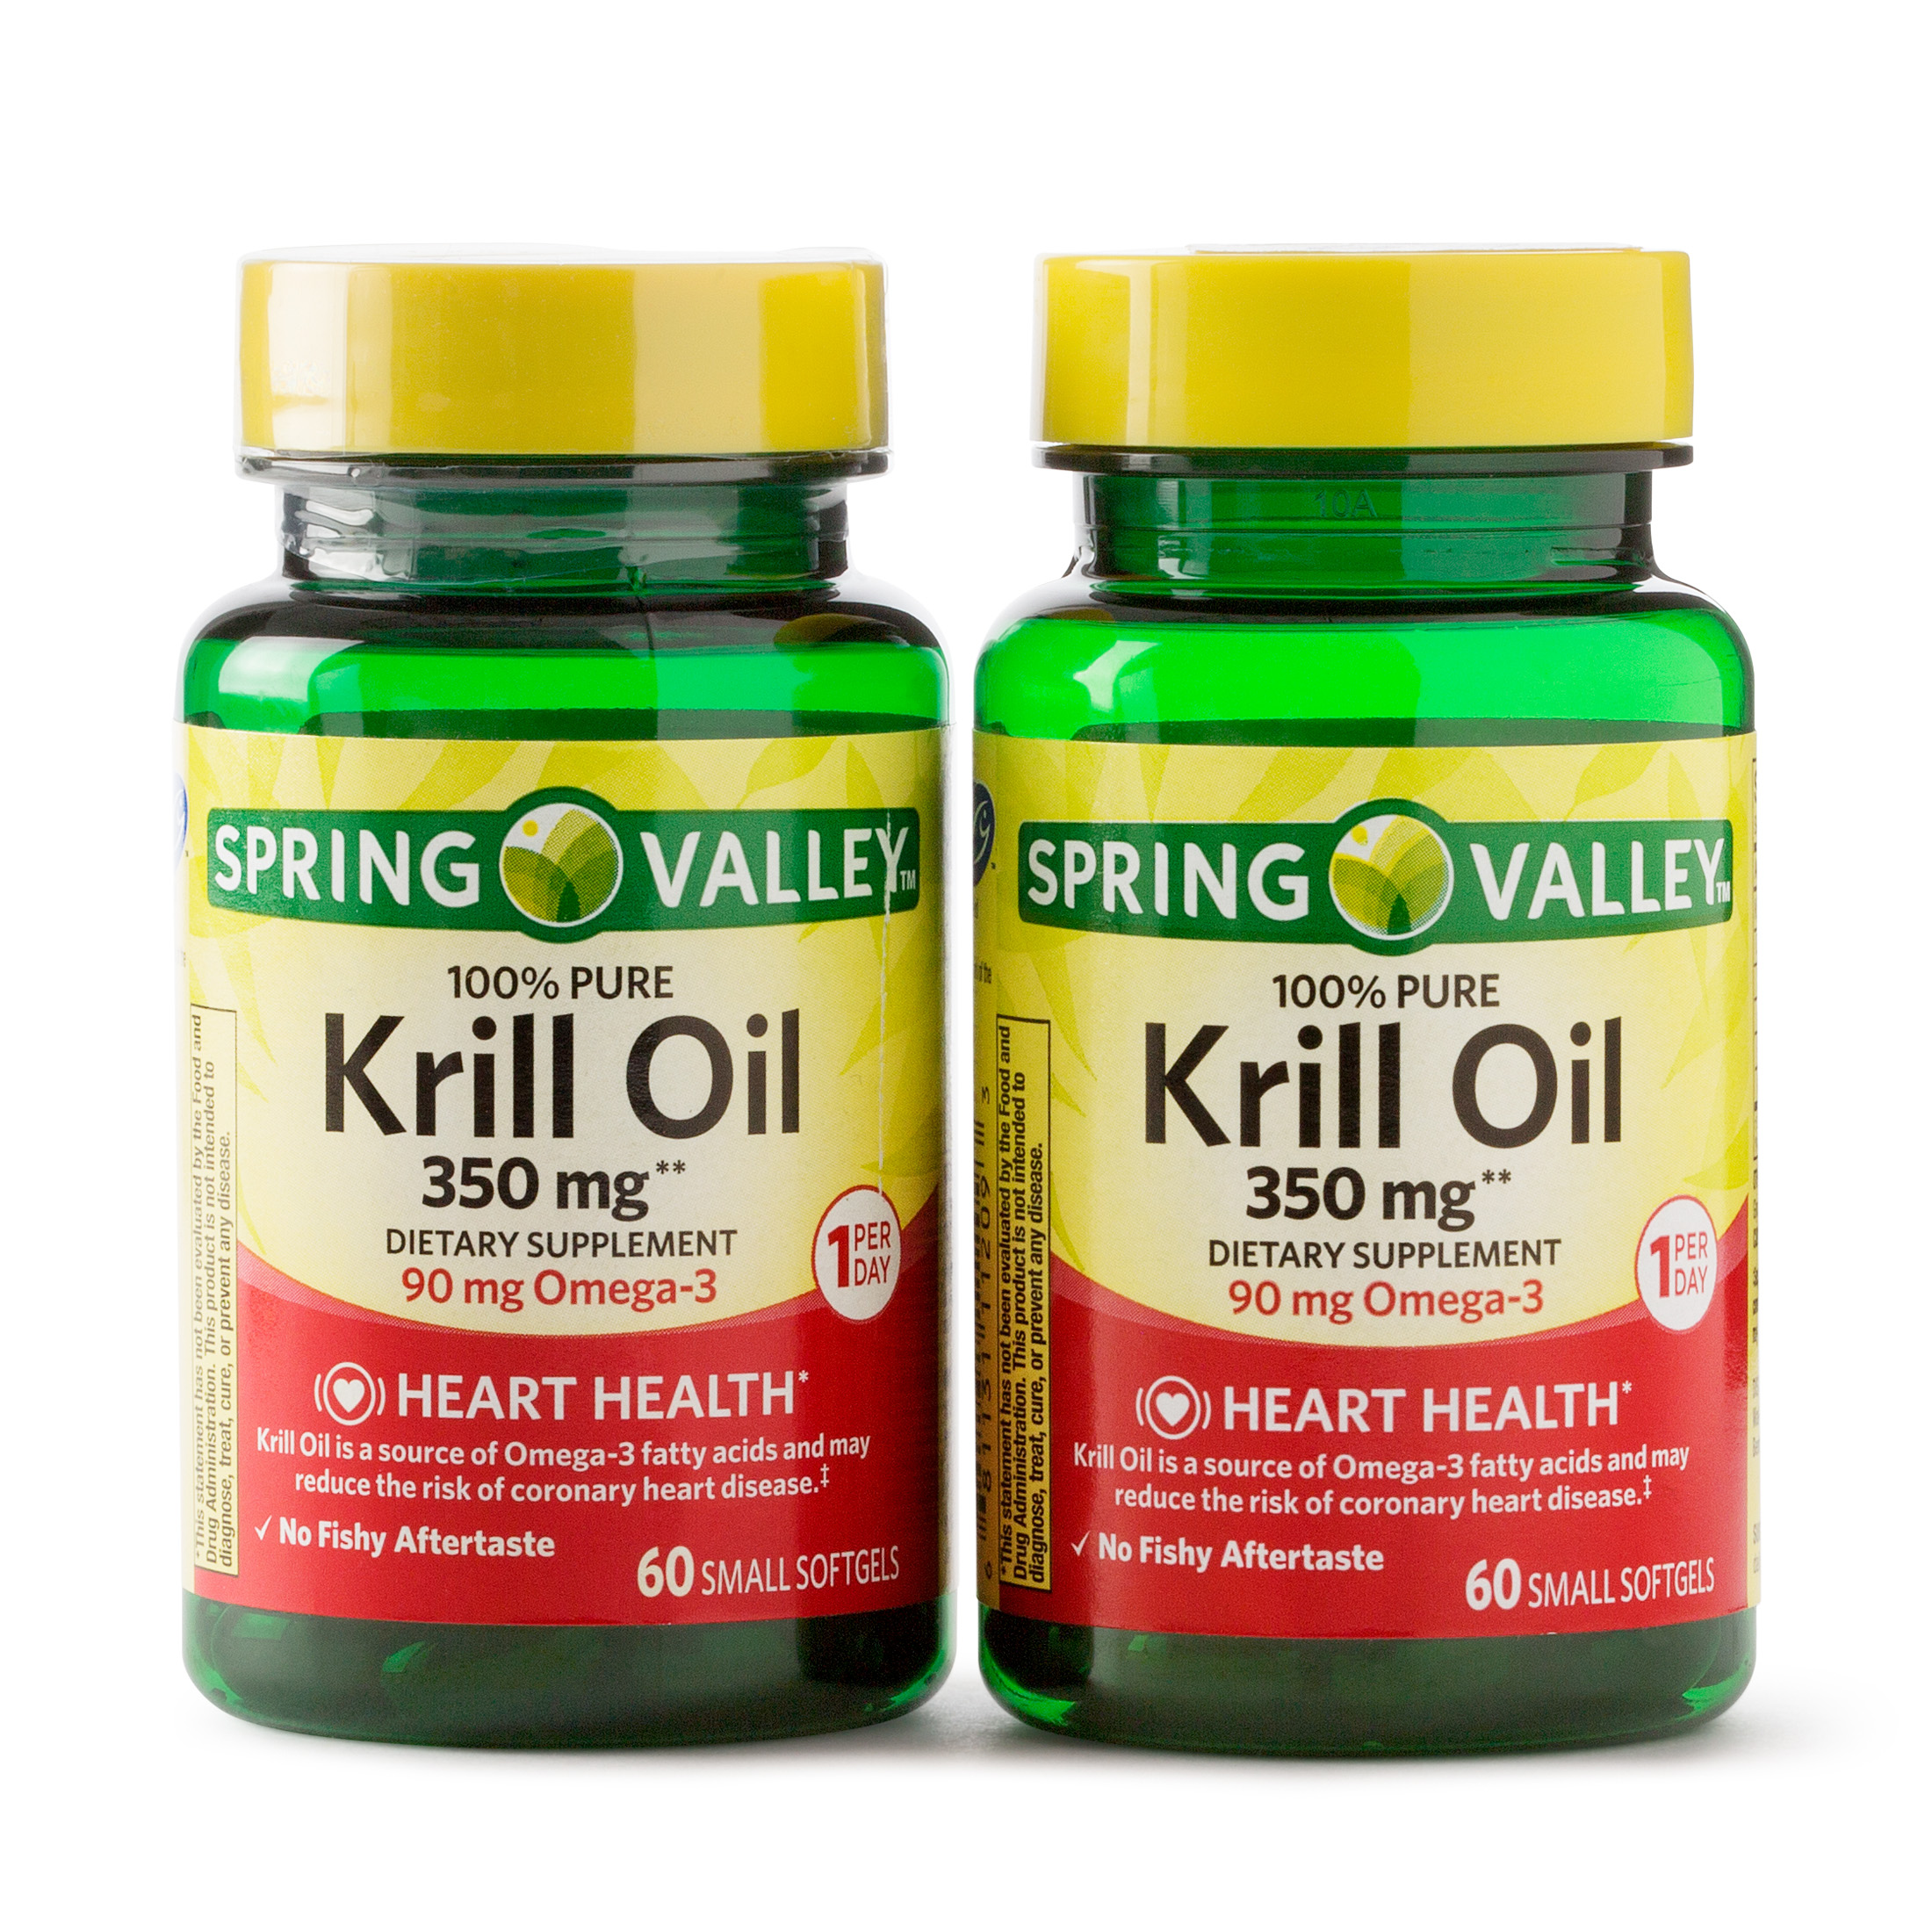 Spring Valley Krill Oil for Heart Health, 350 Mg, 60 Ct, 2 Pack